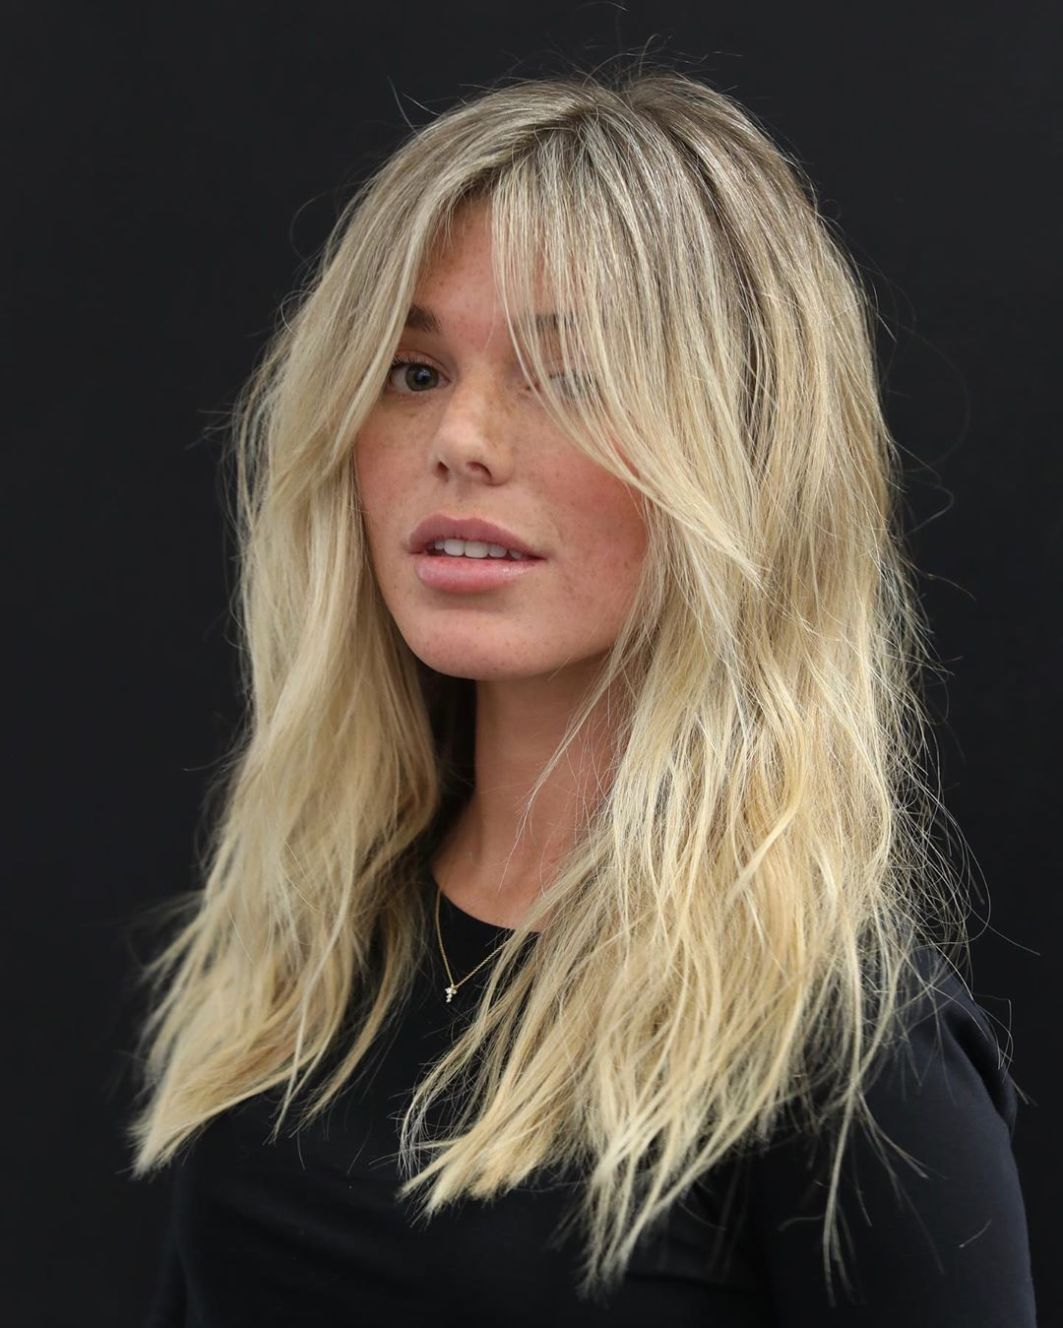 Mid Length Hair In 2020 Hair Styles Thick Hair Styles Haircut For Square Face